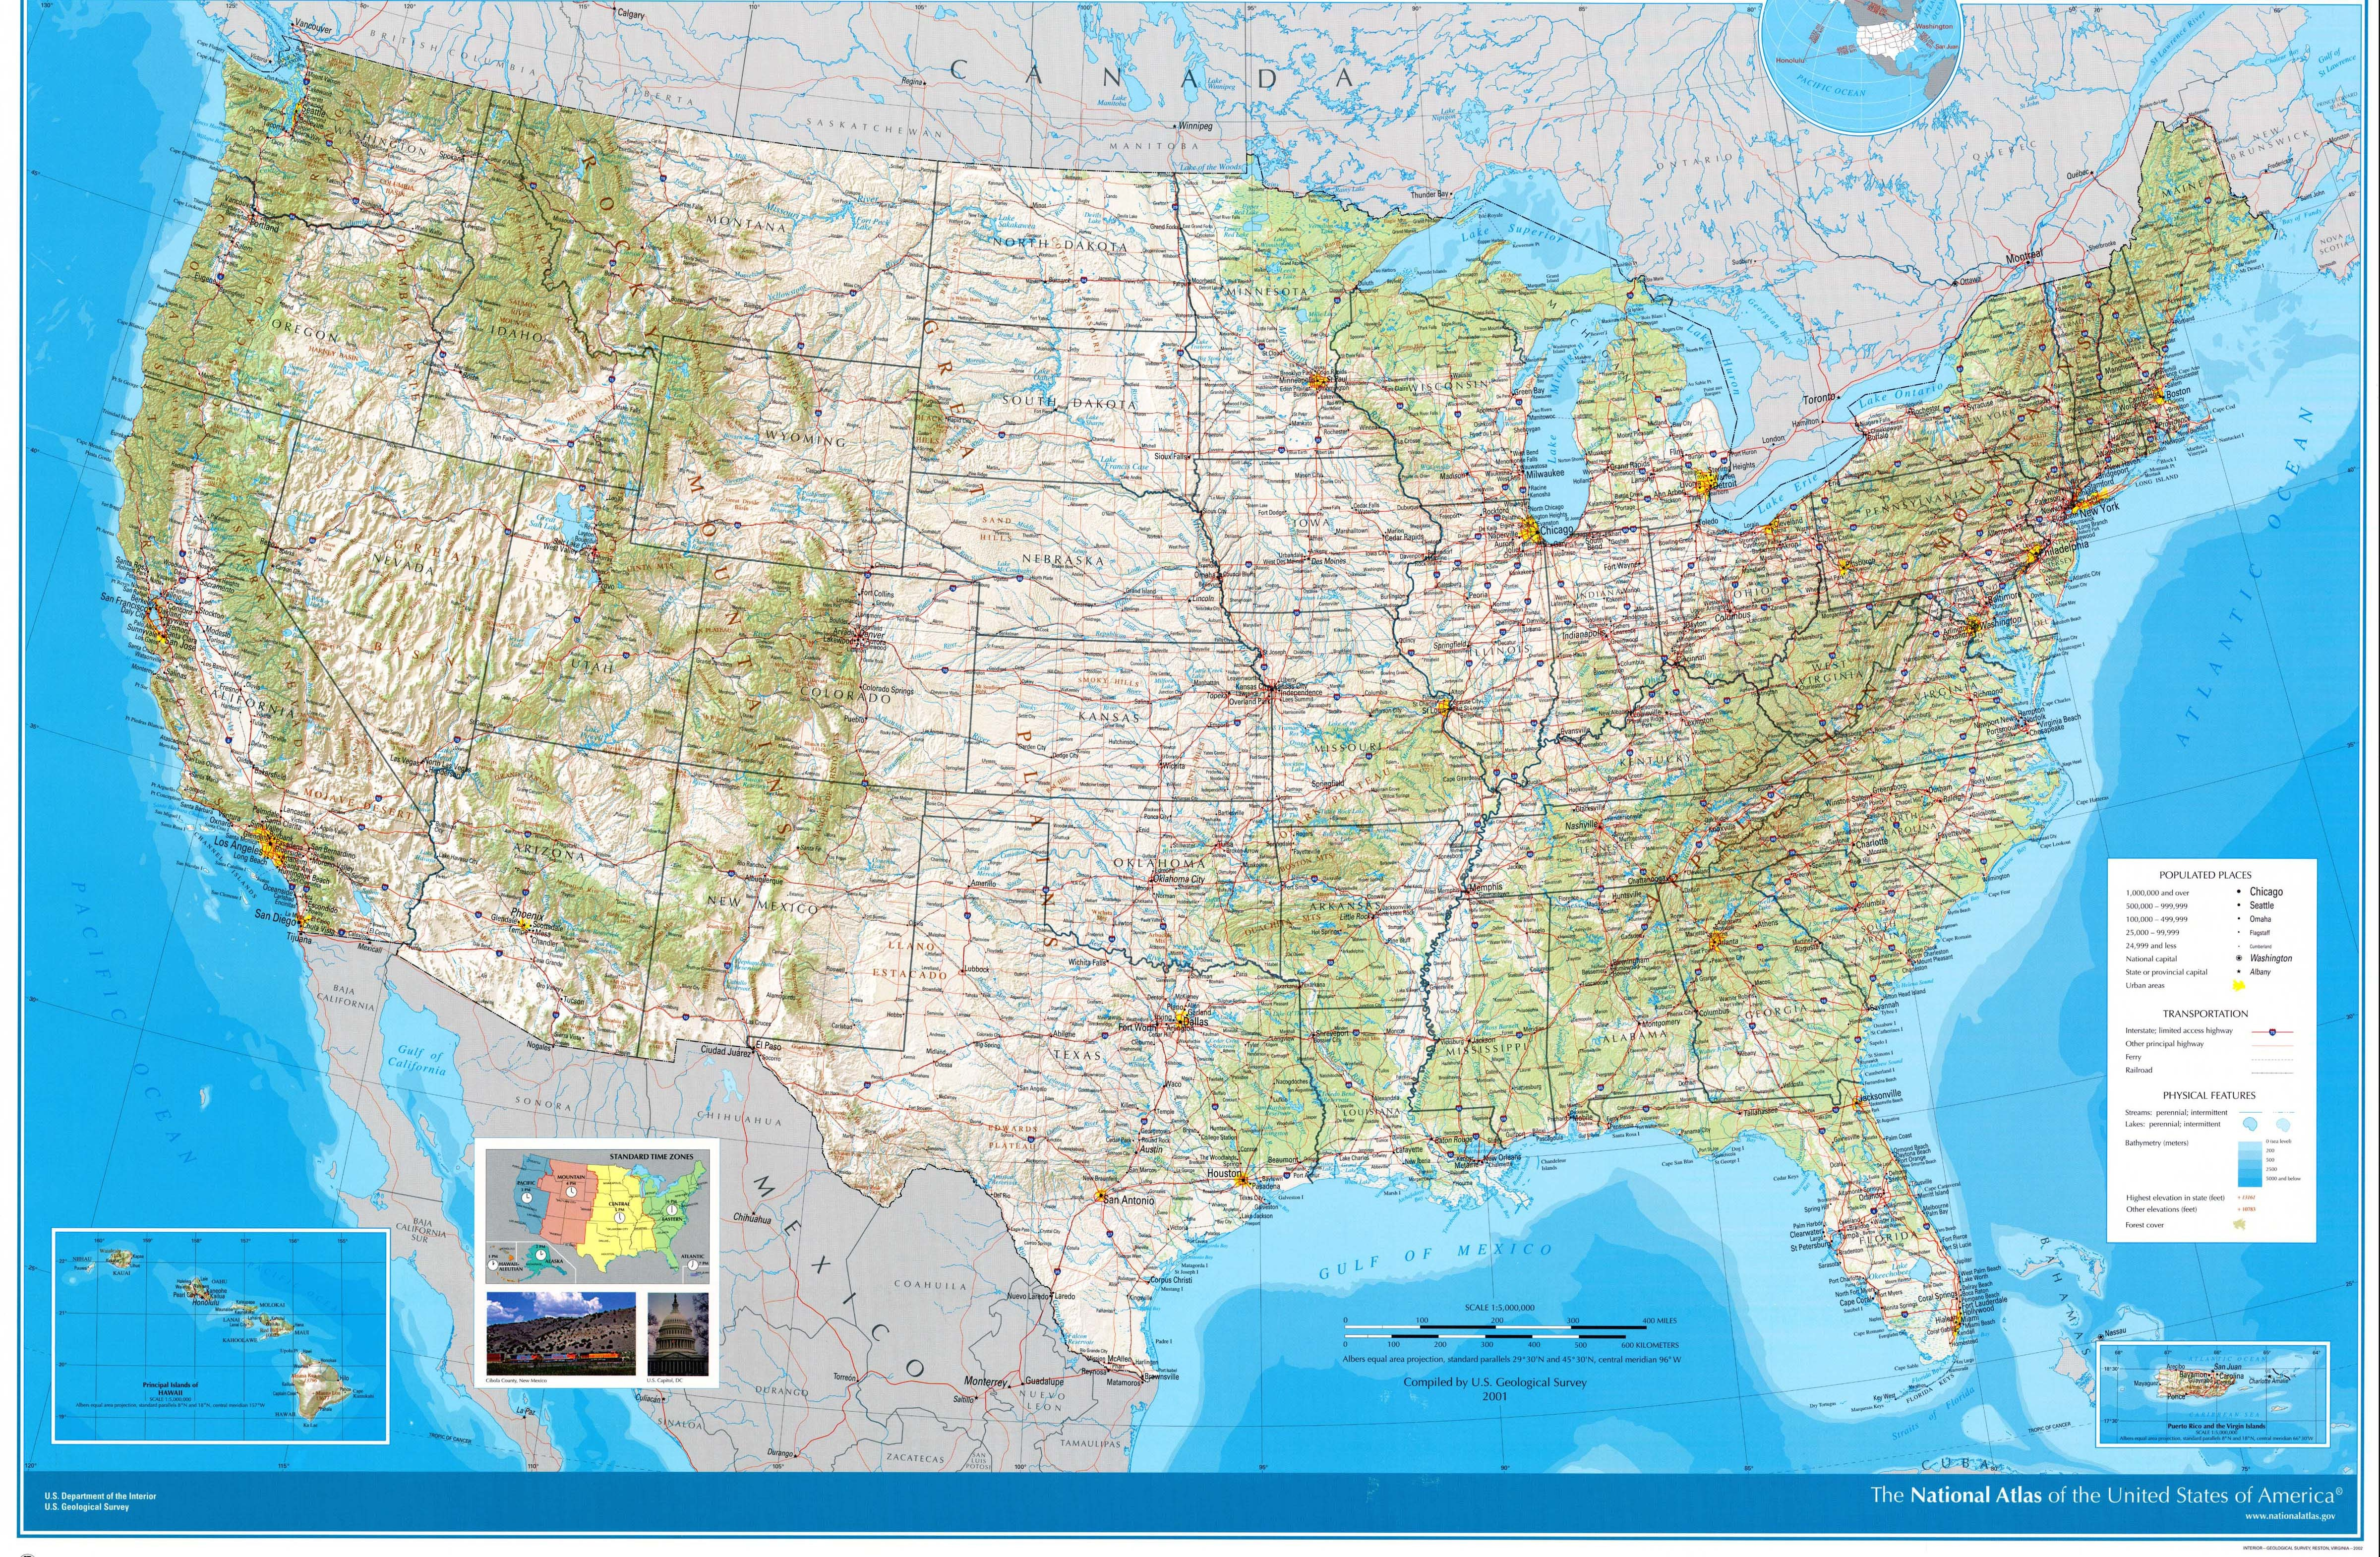 USA large scale topographical map